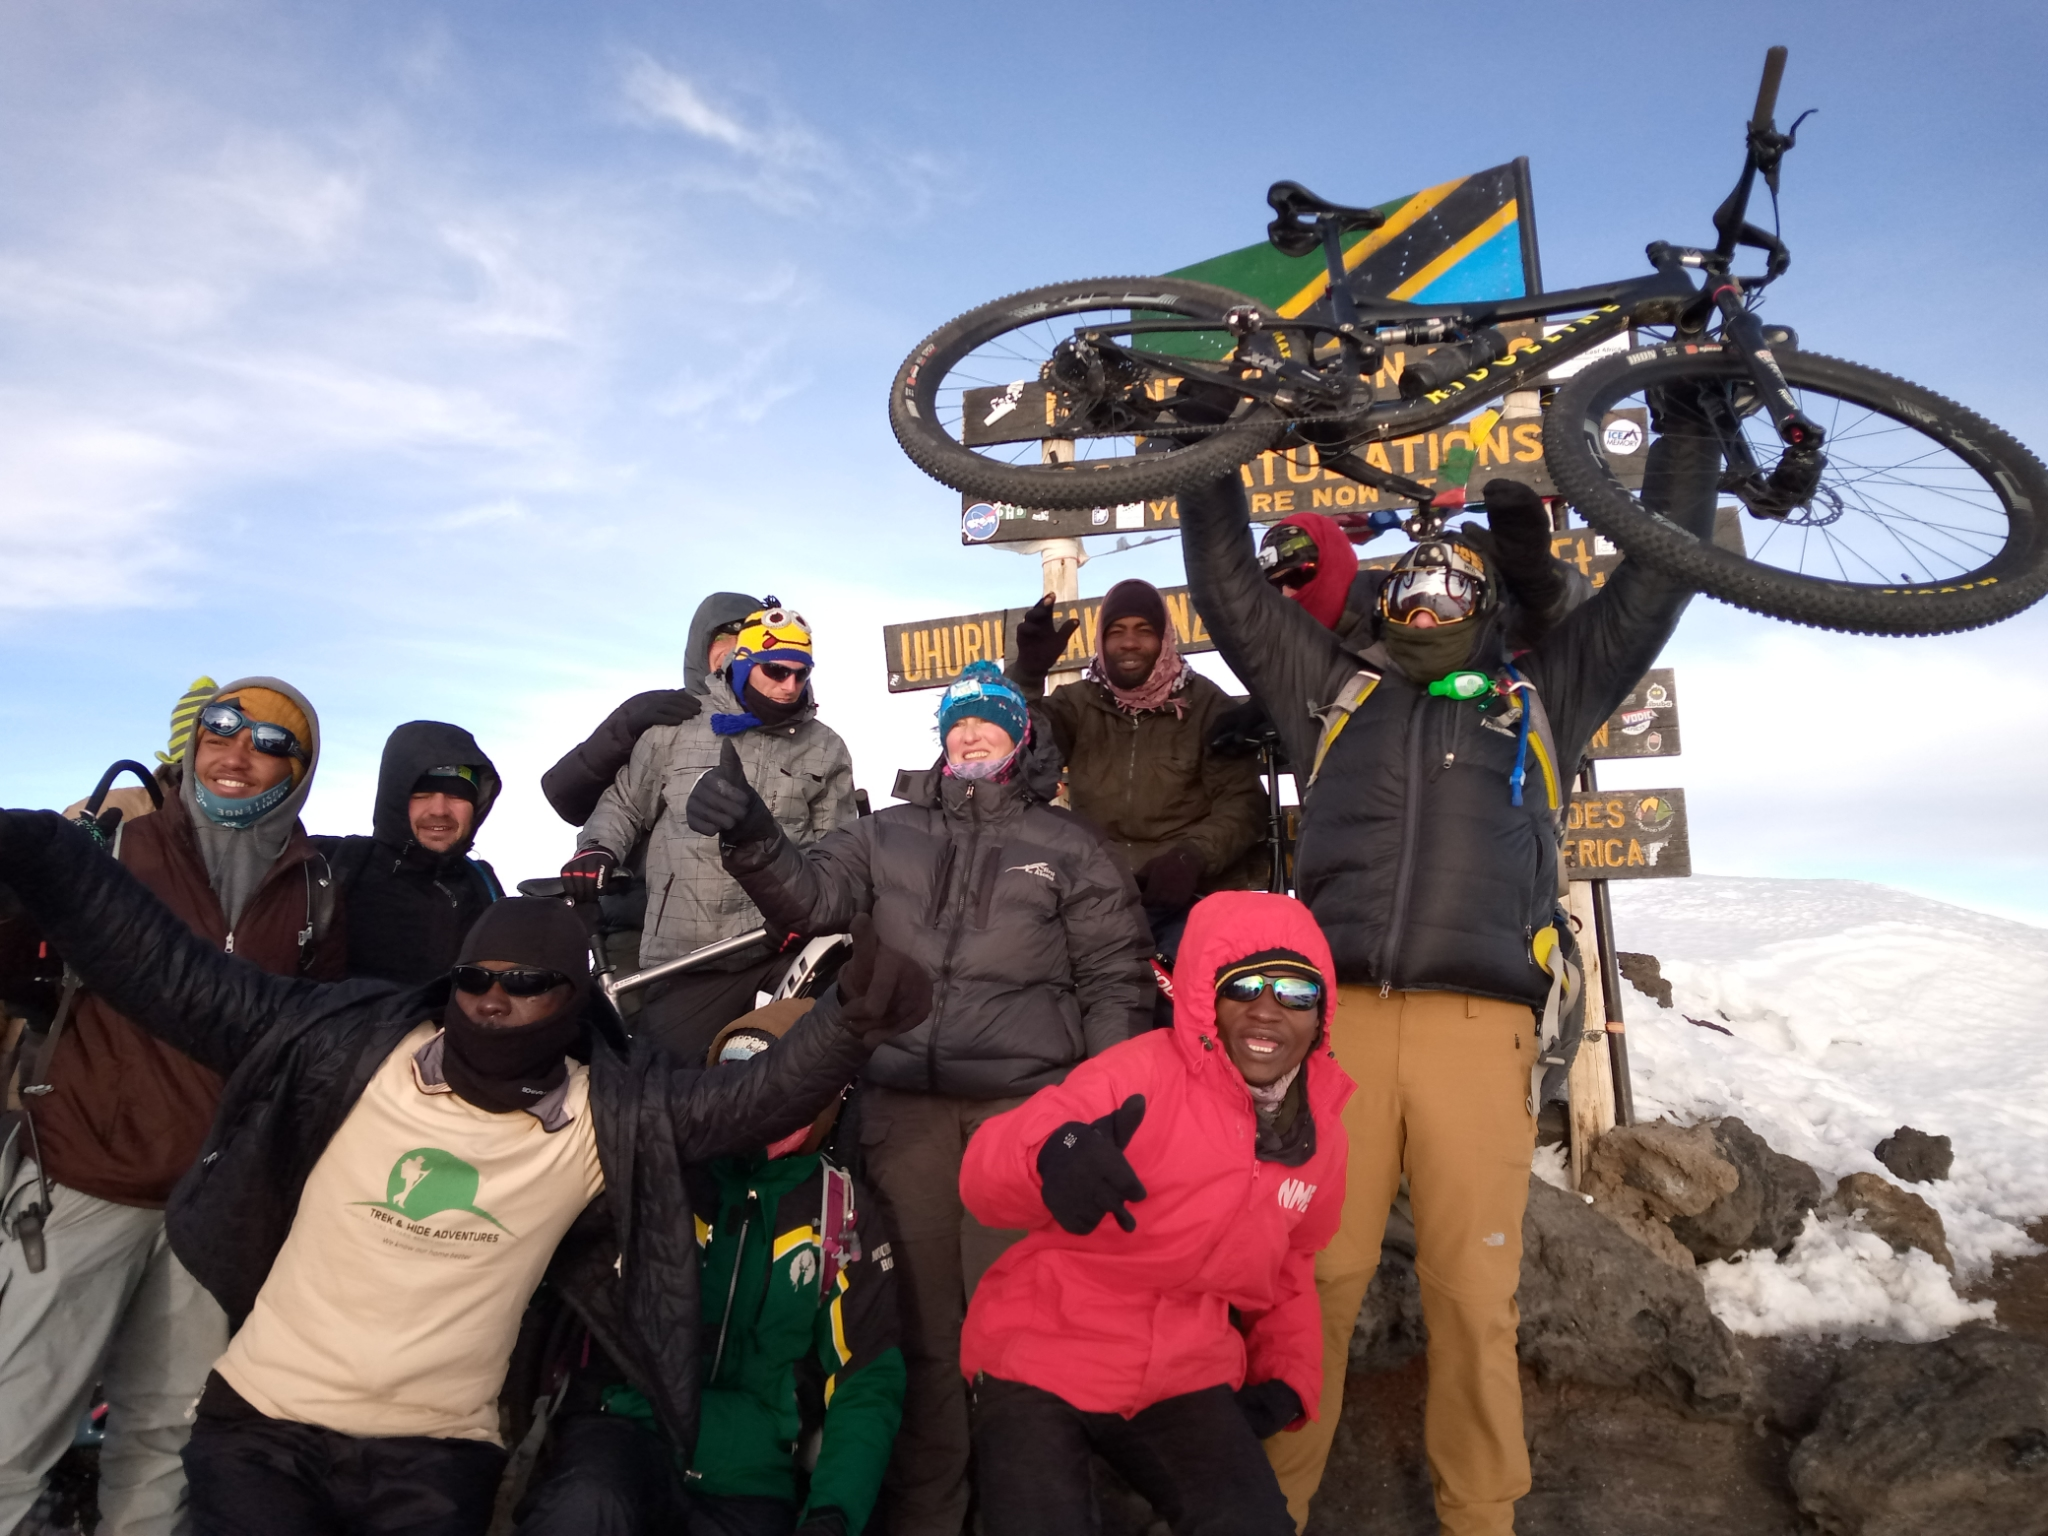 """Our Cycling Challenge from Kilimanjaro to Ngorongoro Conservation Area takes us through Tanzania's lush green forests to dry bush lands, remote villages to bustling towns and from lakeside shores to plantations!    [themify_button bgcolor=""""green"""" size=""""large"""" link=""""https://trekandhideadventures.com/cycle-kilimanjaro-to-ngorongoro/"""" style=""""button""""]Read More[/themify_button]"""